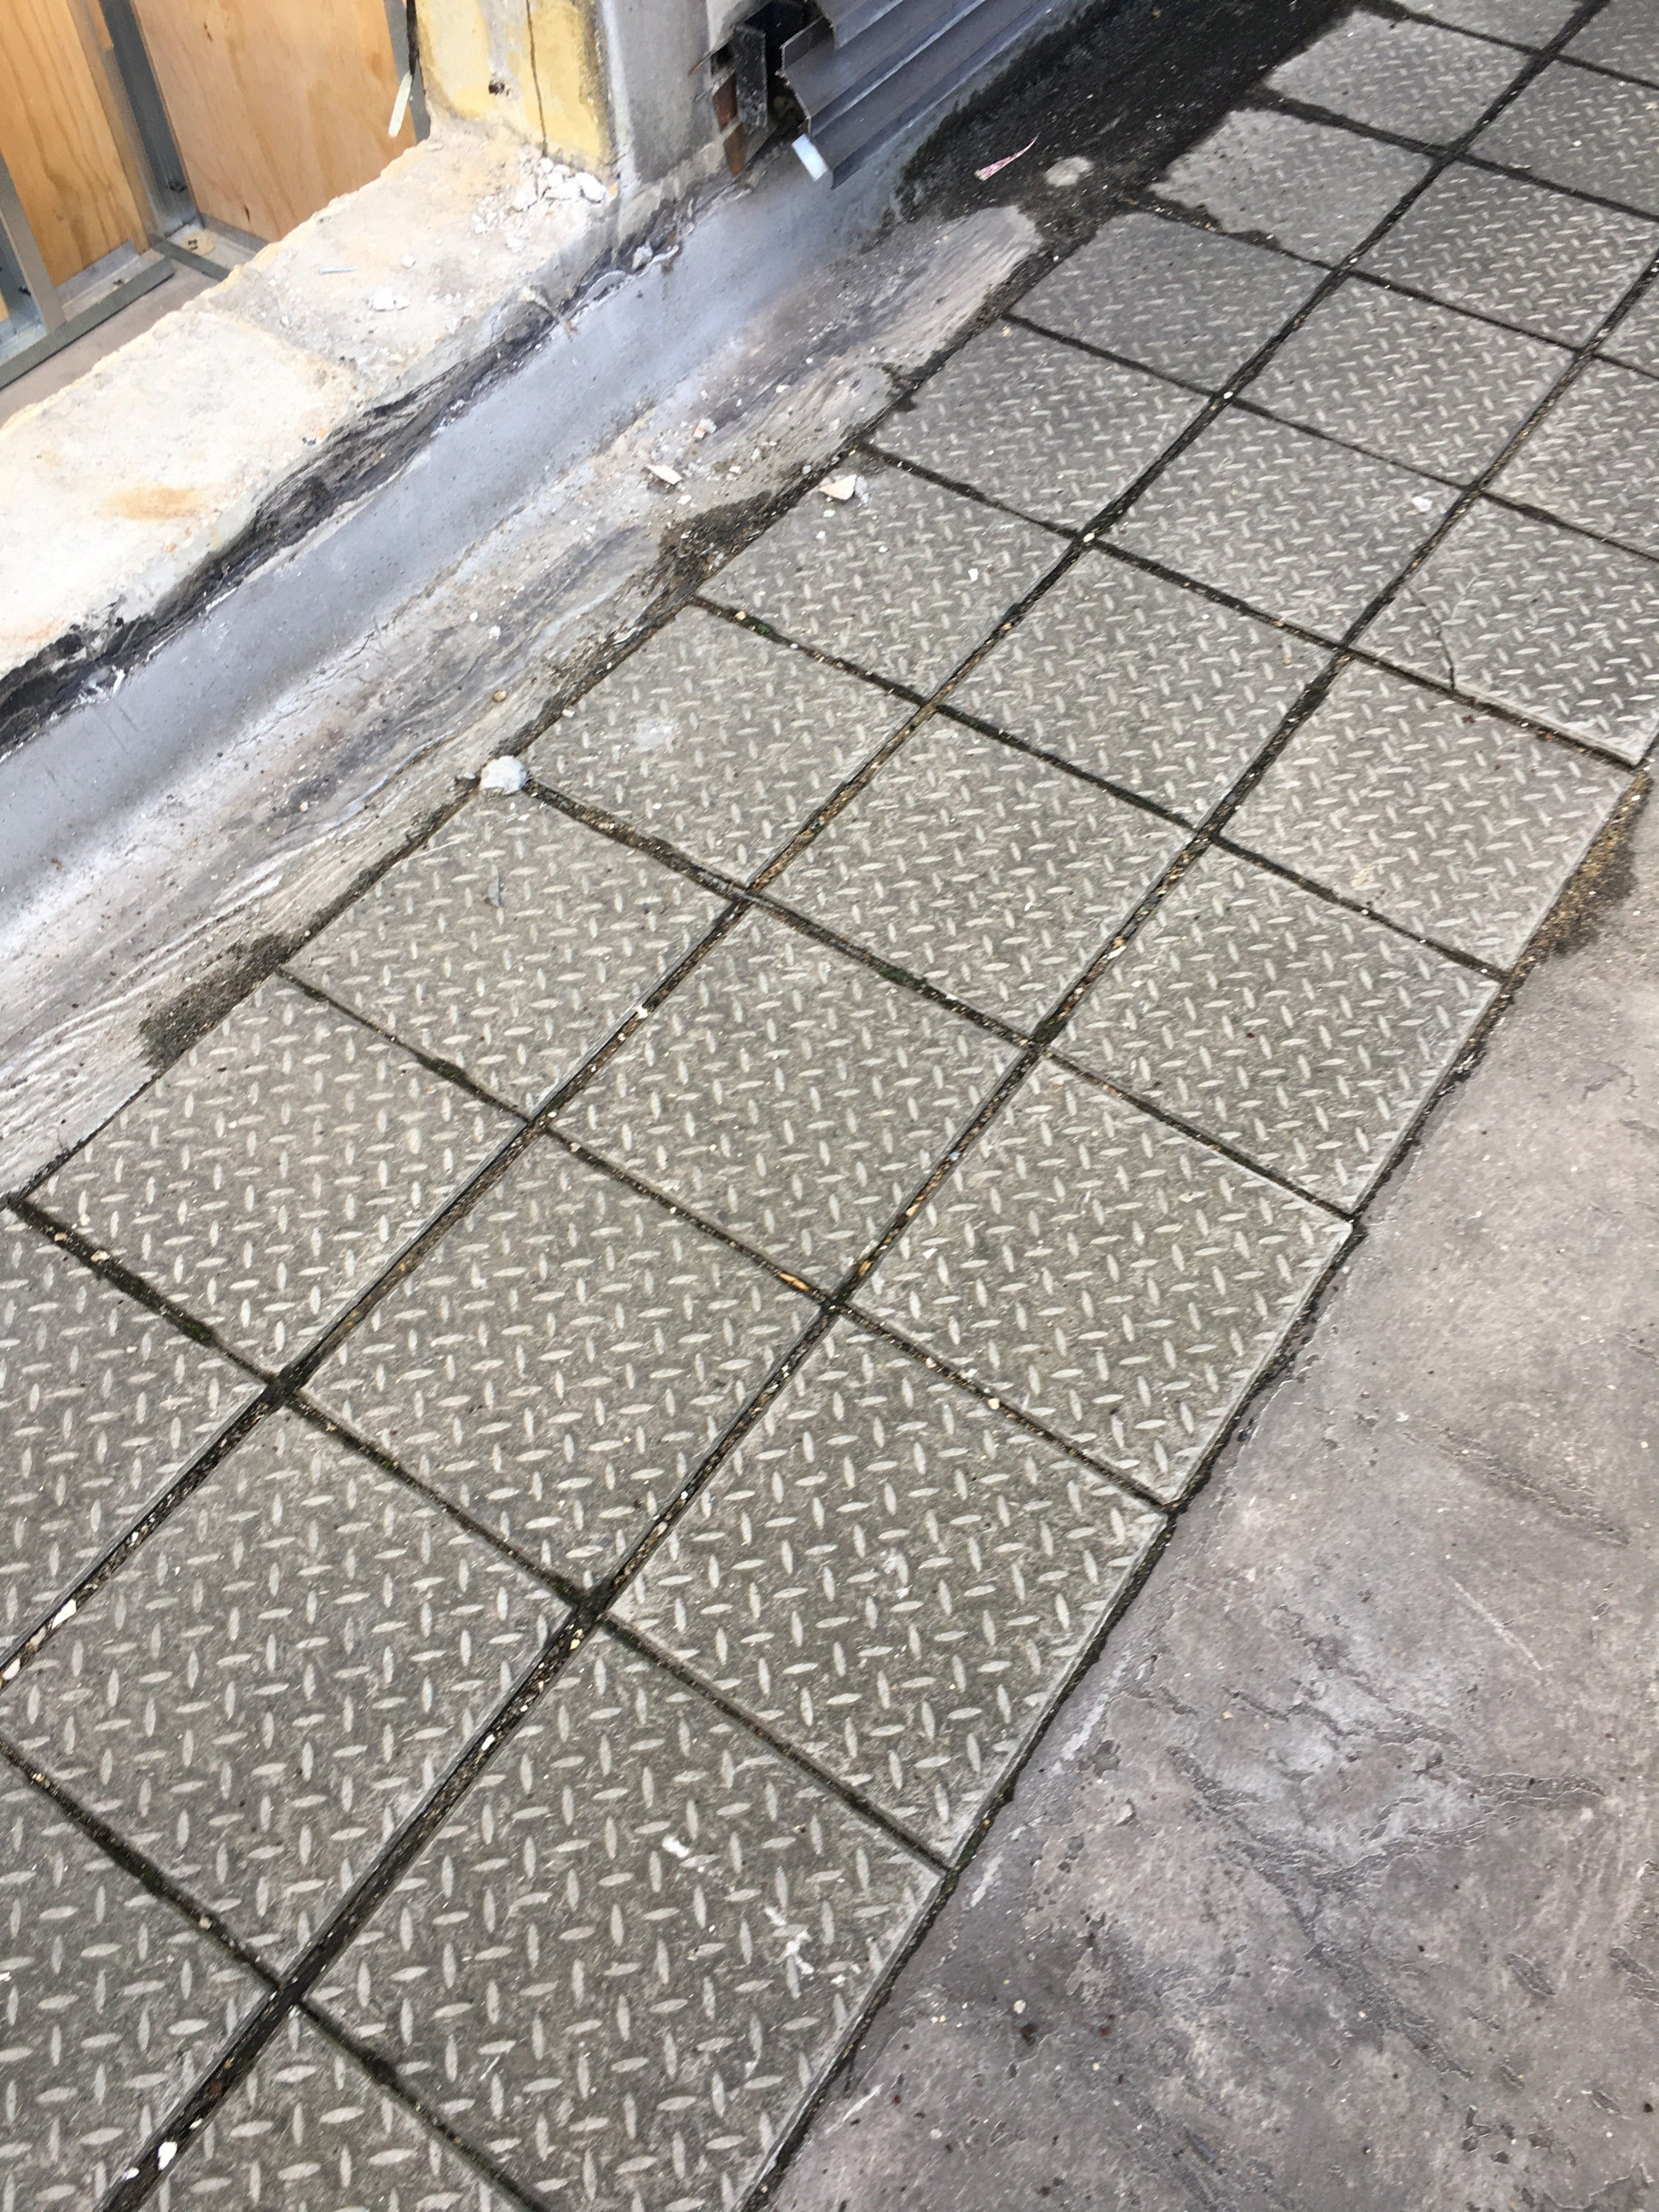 It Is A Happy Friday For This Customer Who Had These Asbestos Tiles Removed From Their Apartment Asbestosrem Mesothelioma Asbestos Removal Medical Definition